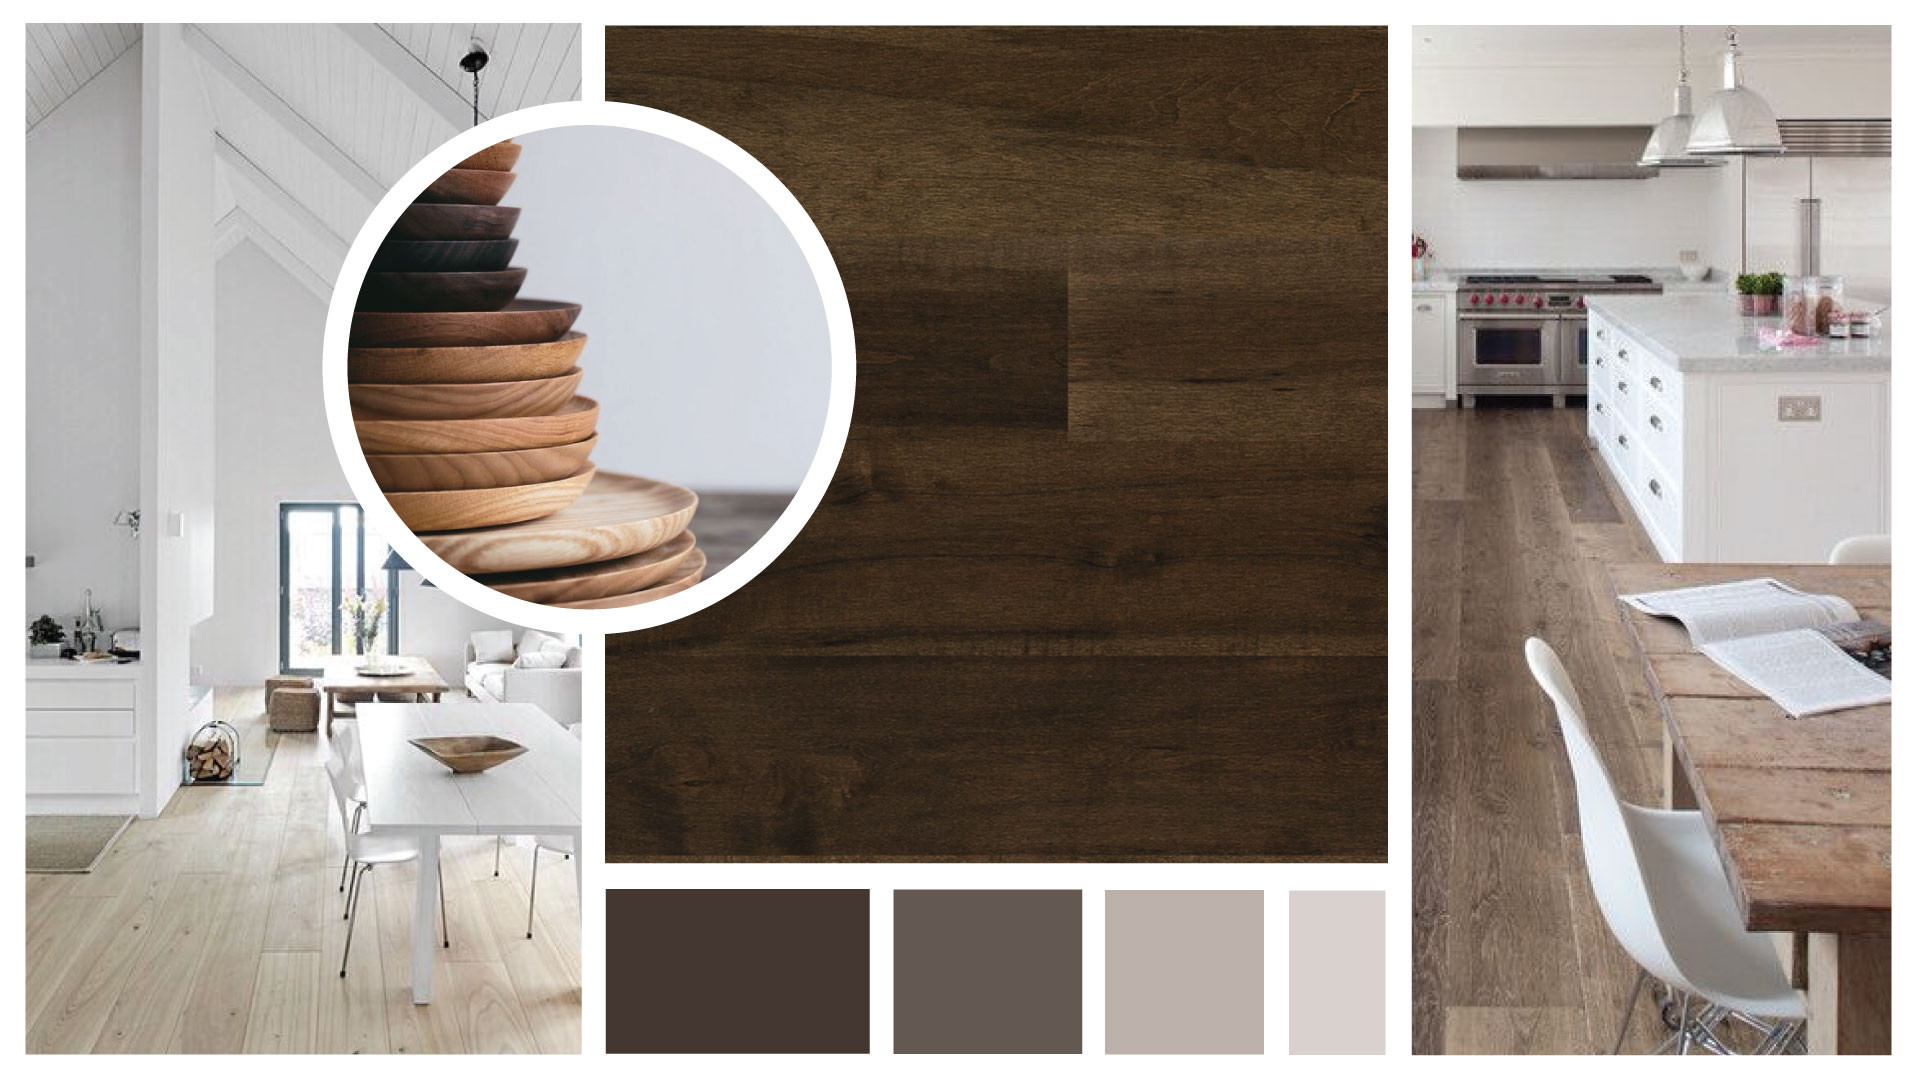 10 Cute Most Popular Hardwood Floor Colors 2017 2021 free download most popular hardwood floor colors 2017 of 4 latest hardwood flooring trends lauzon flooring throughout whether used to unify a large space or give definition to more traditional room layout